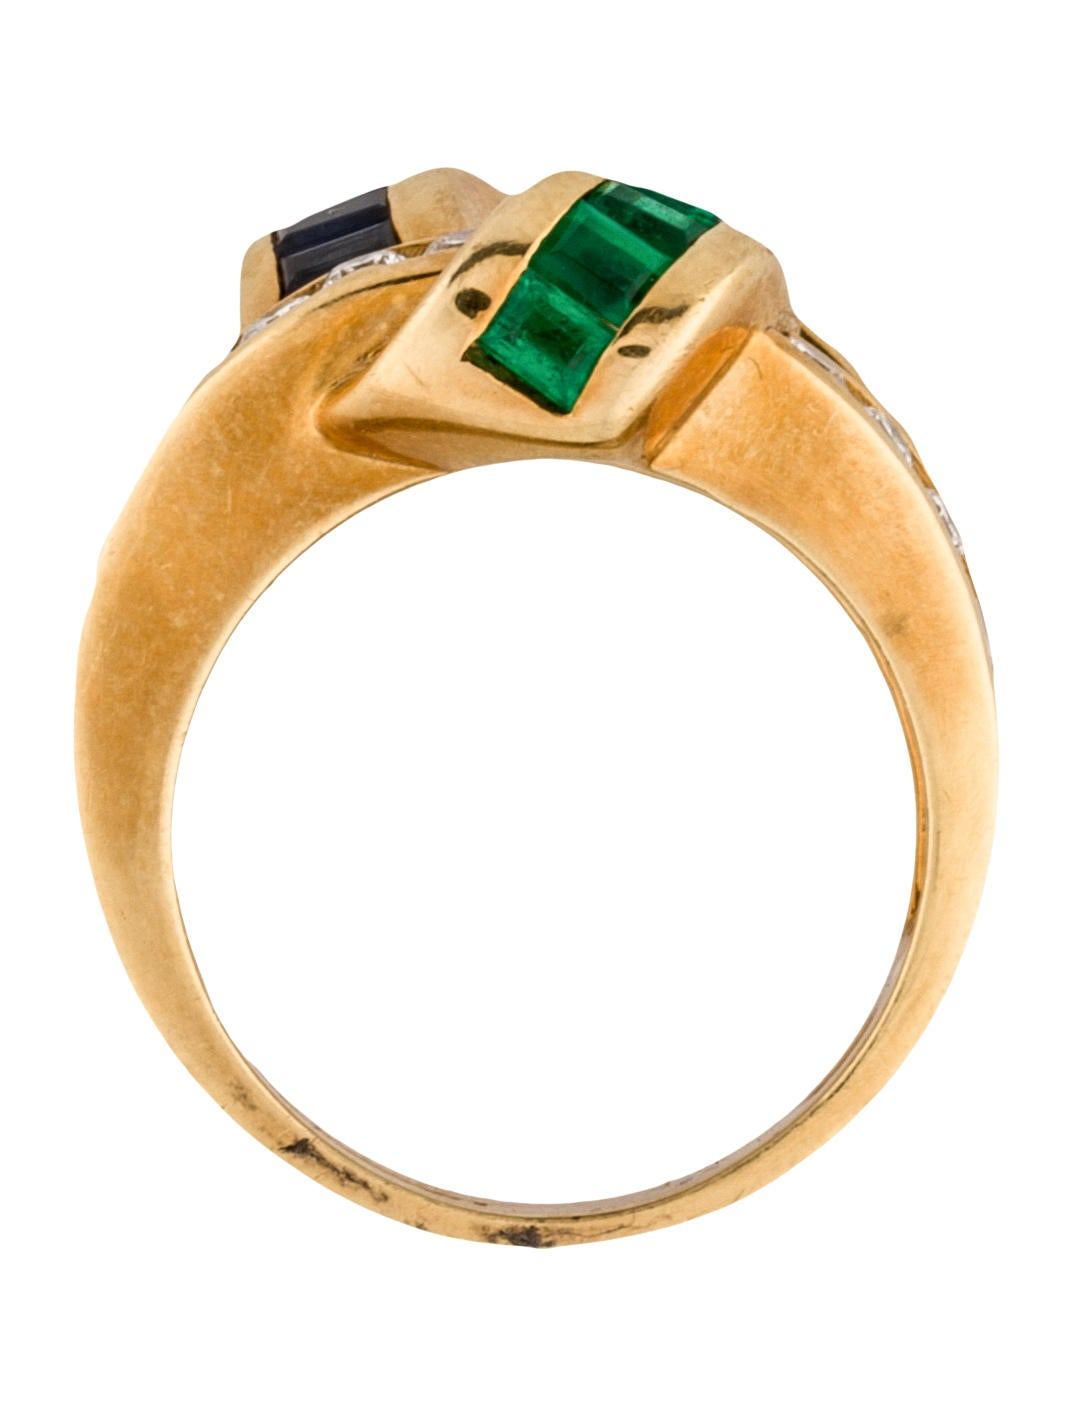 charles krypell 18k sapphire and emerald ring